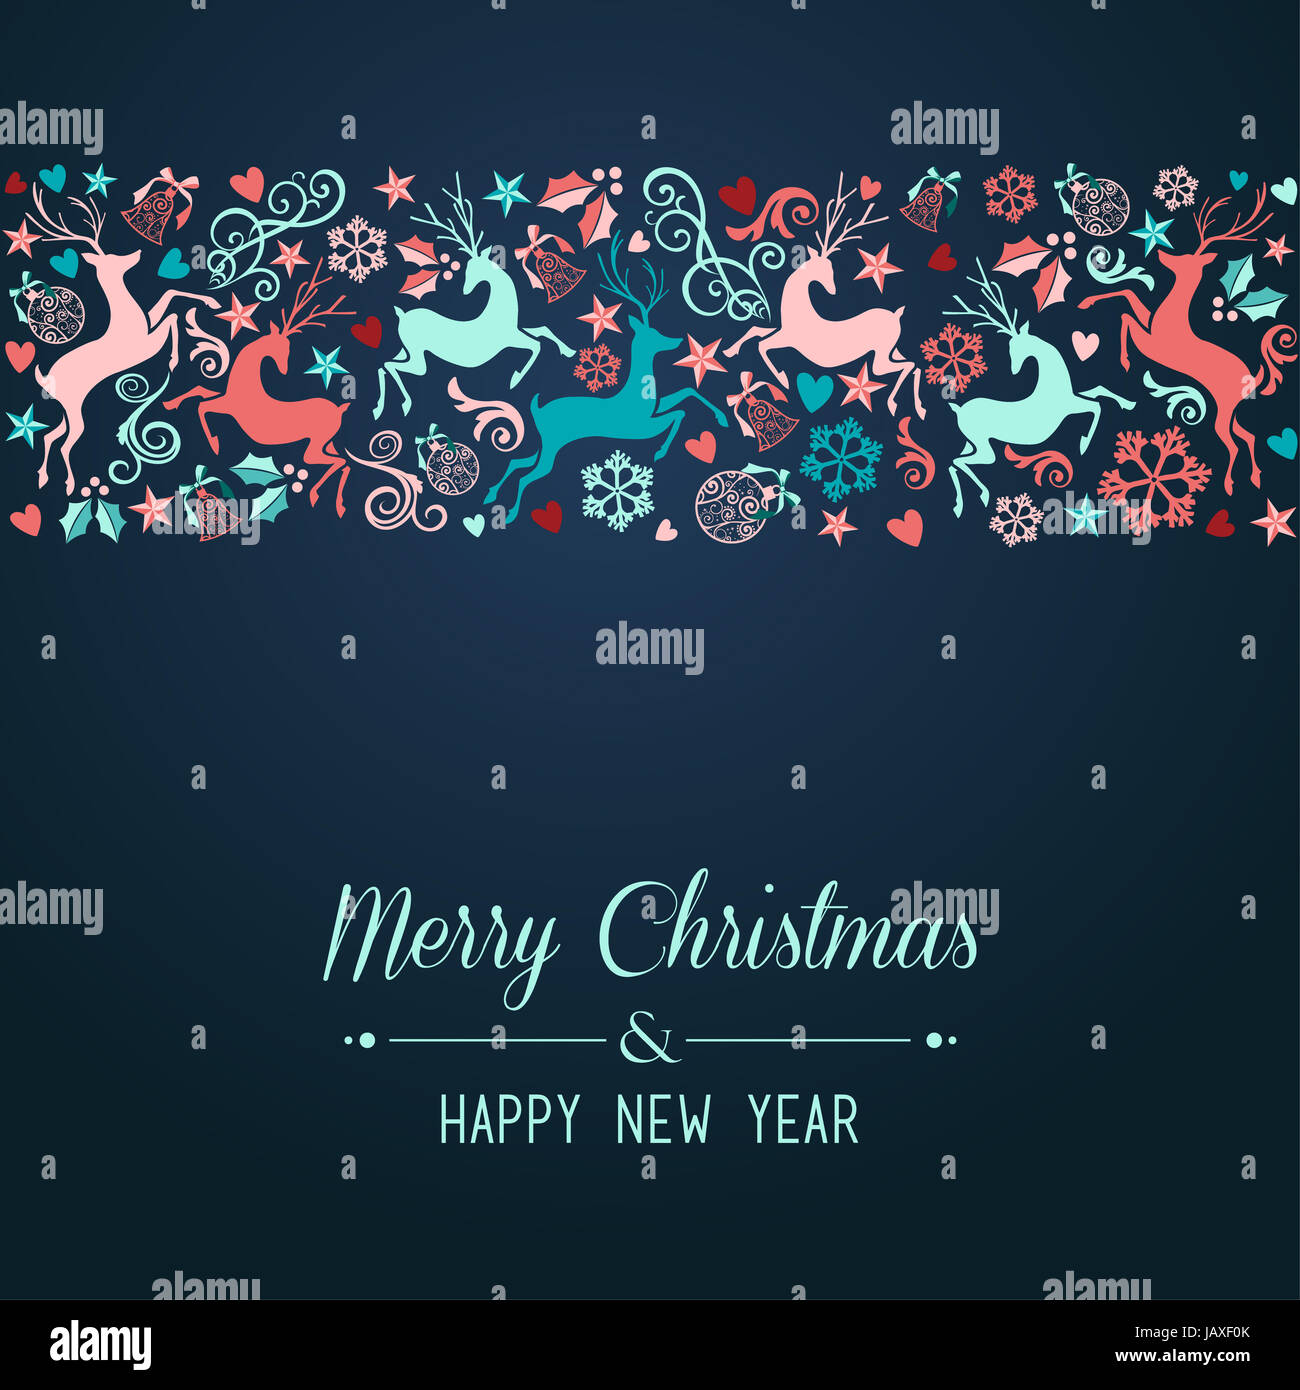 Happy New Year Editing Background 92